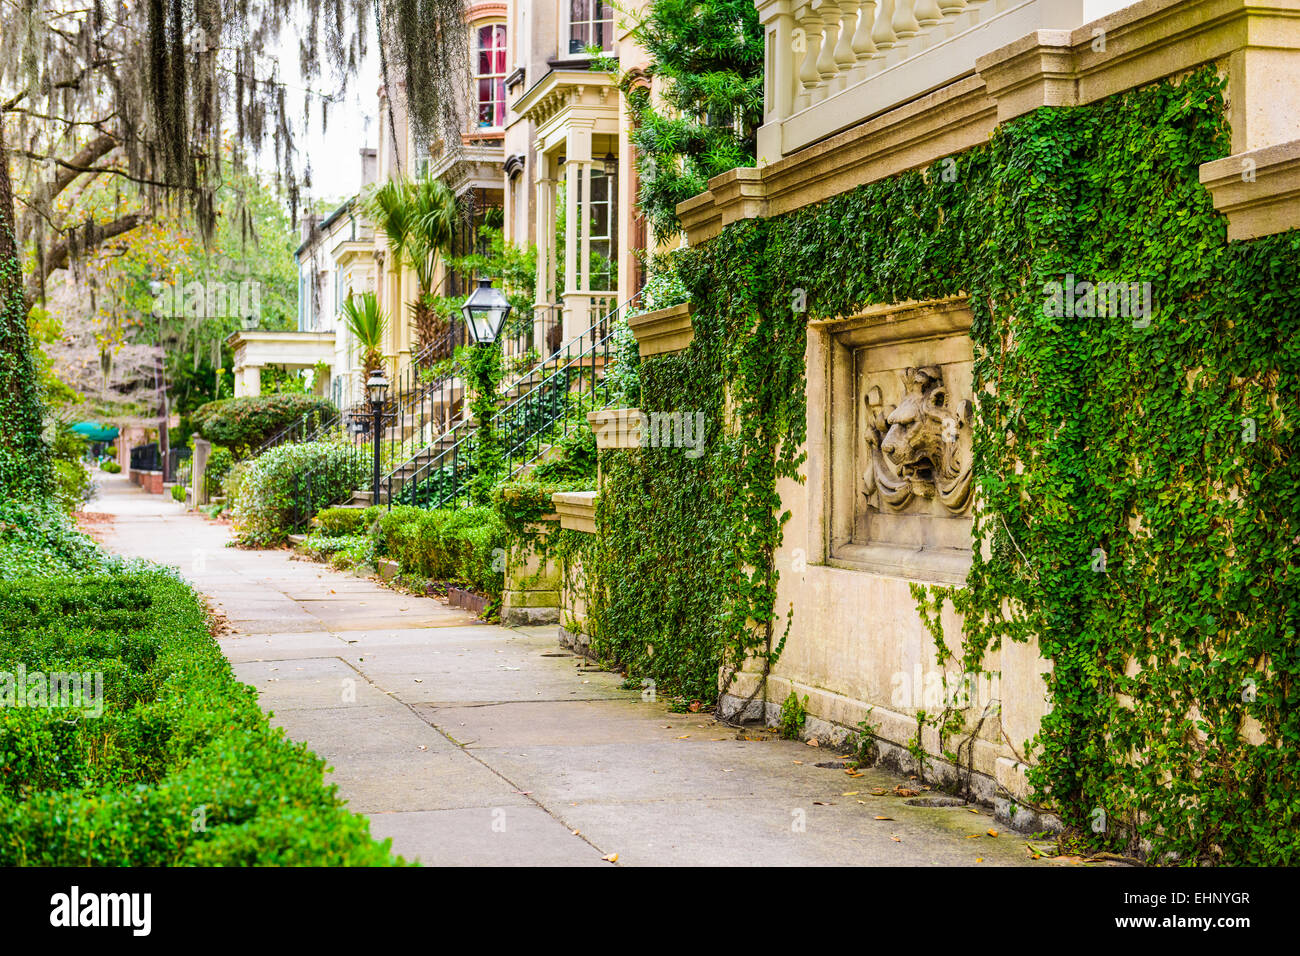 Savannah, Georgia, USA historic downtown sidewalks and rowhouses. - Stock Image